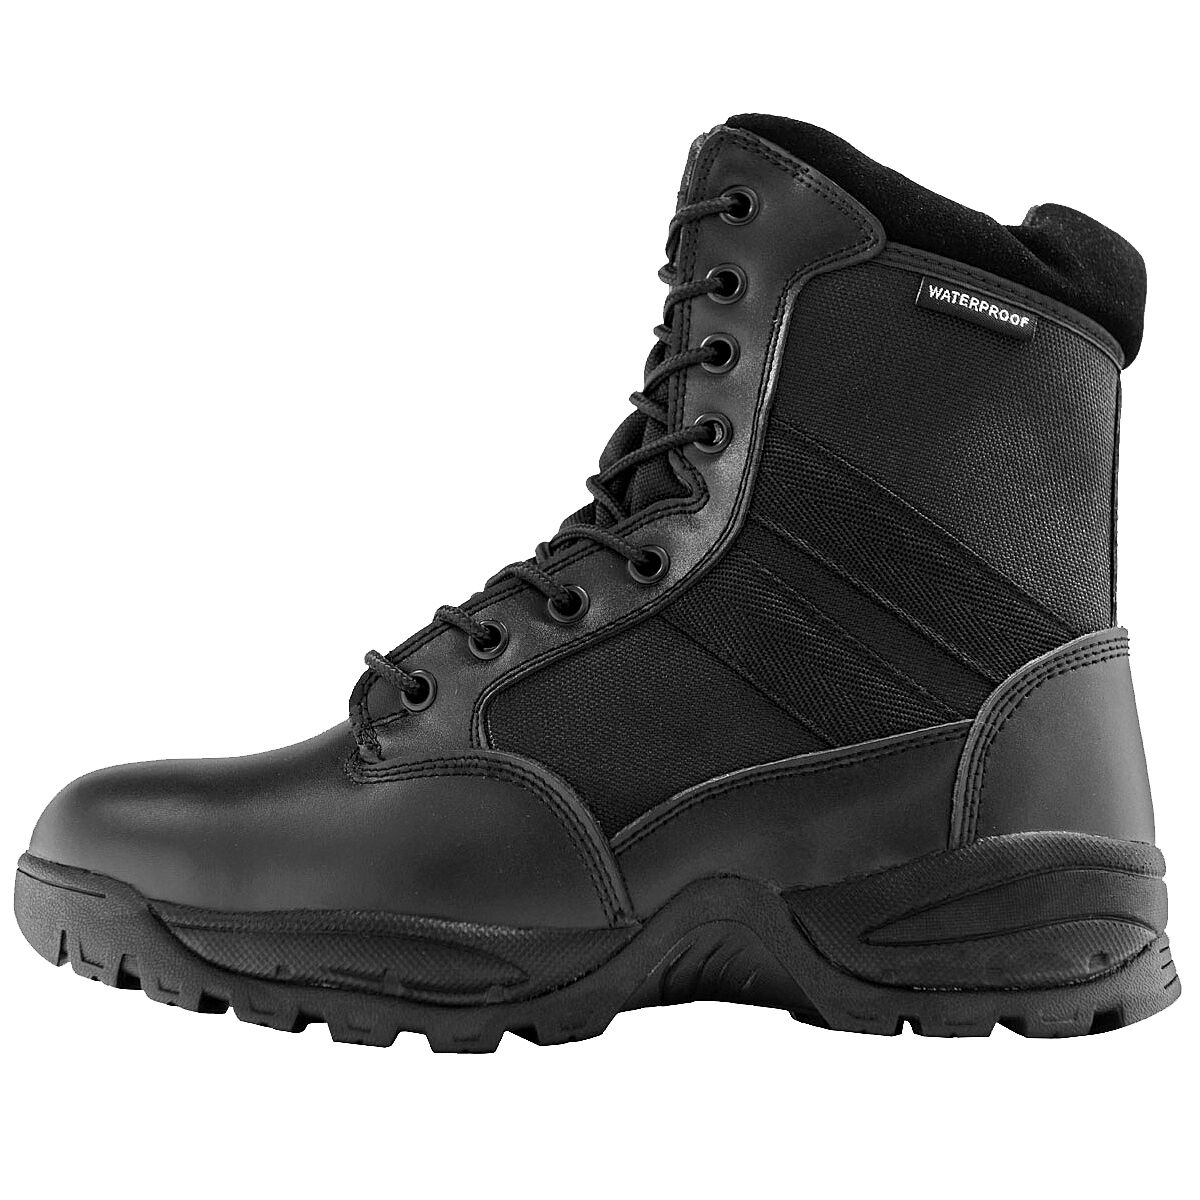 Maelstrom® TAC FORCE 8'' Men's Black Waterproof Insulated Boots with Zipper 1